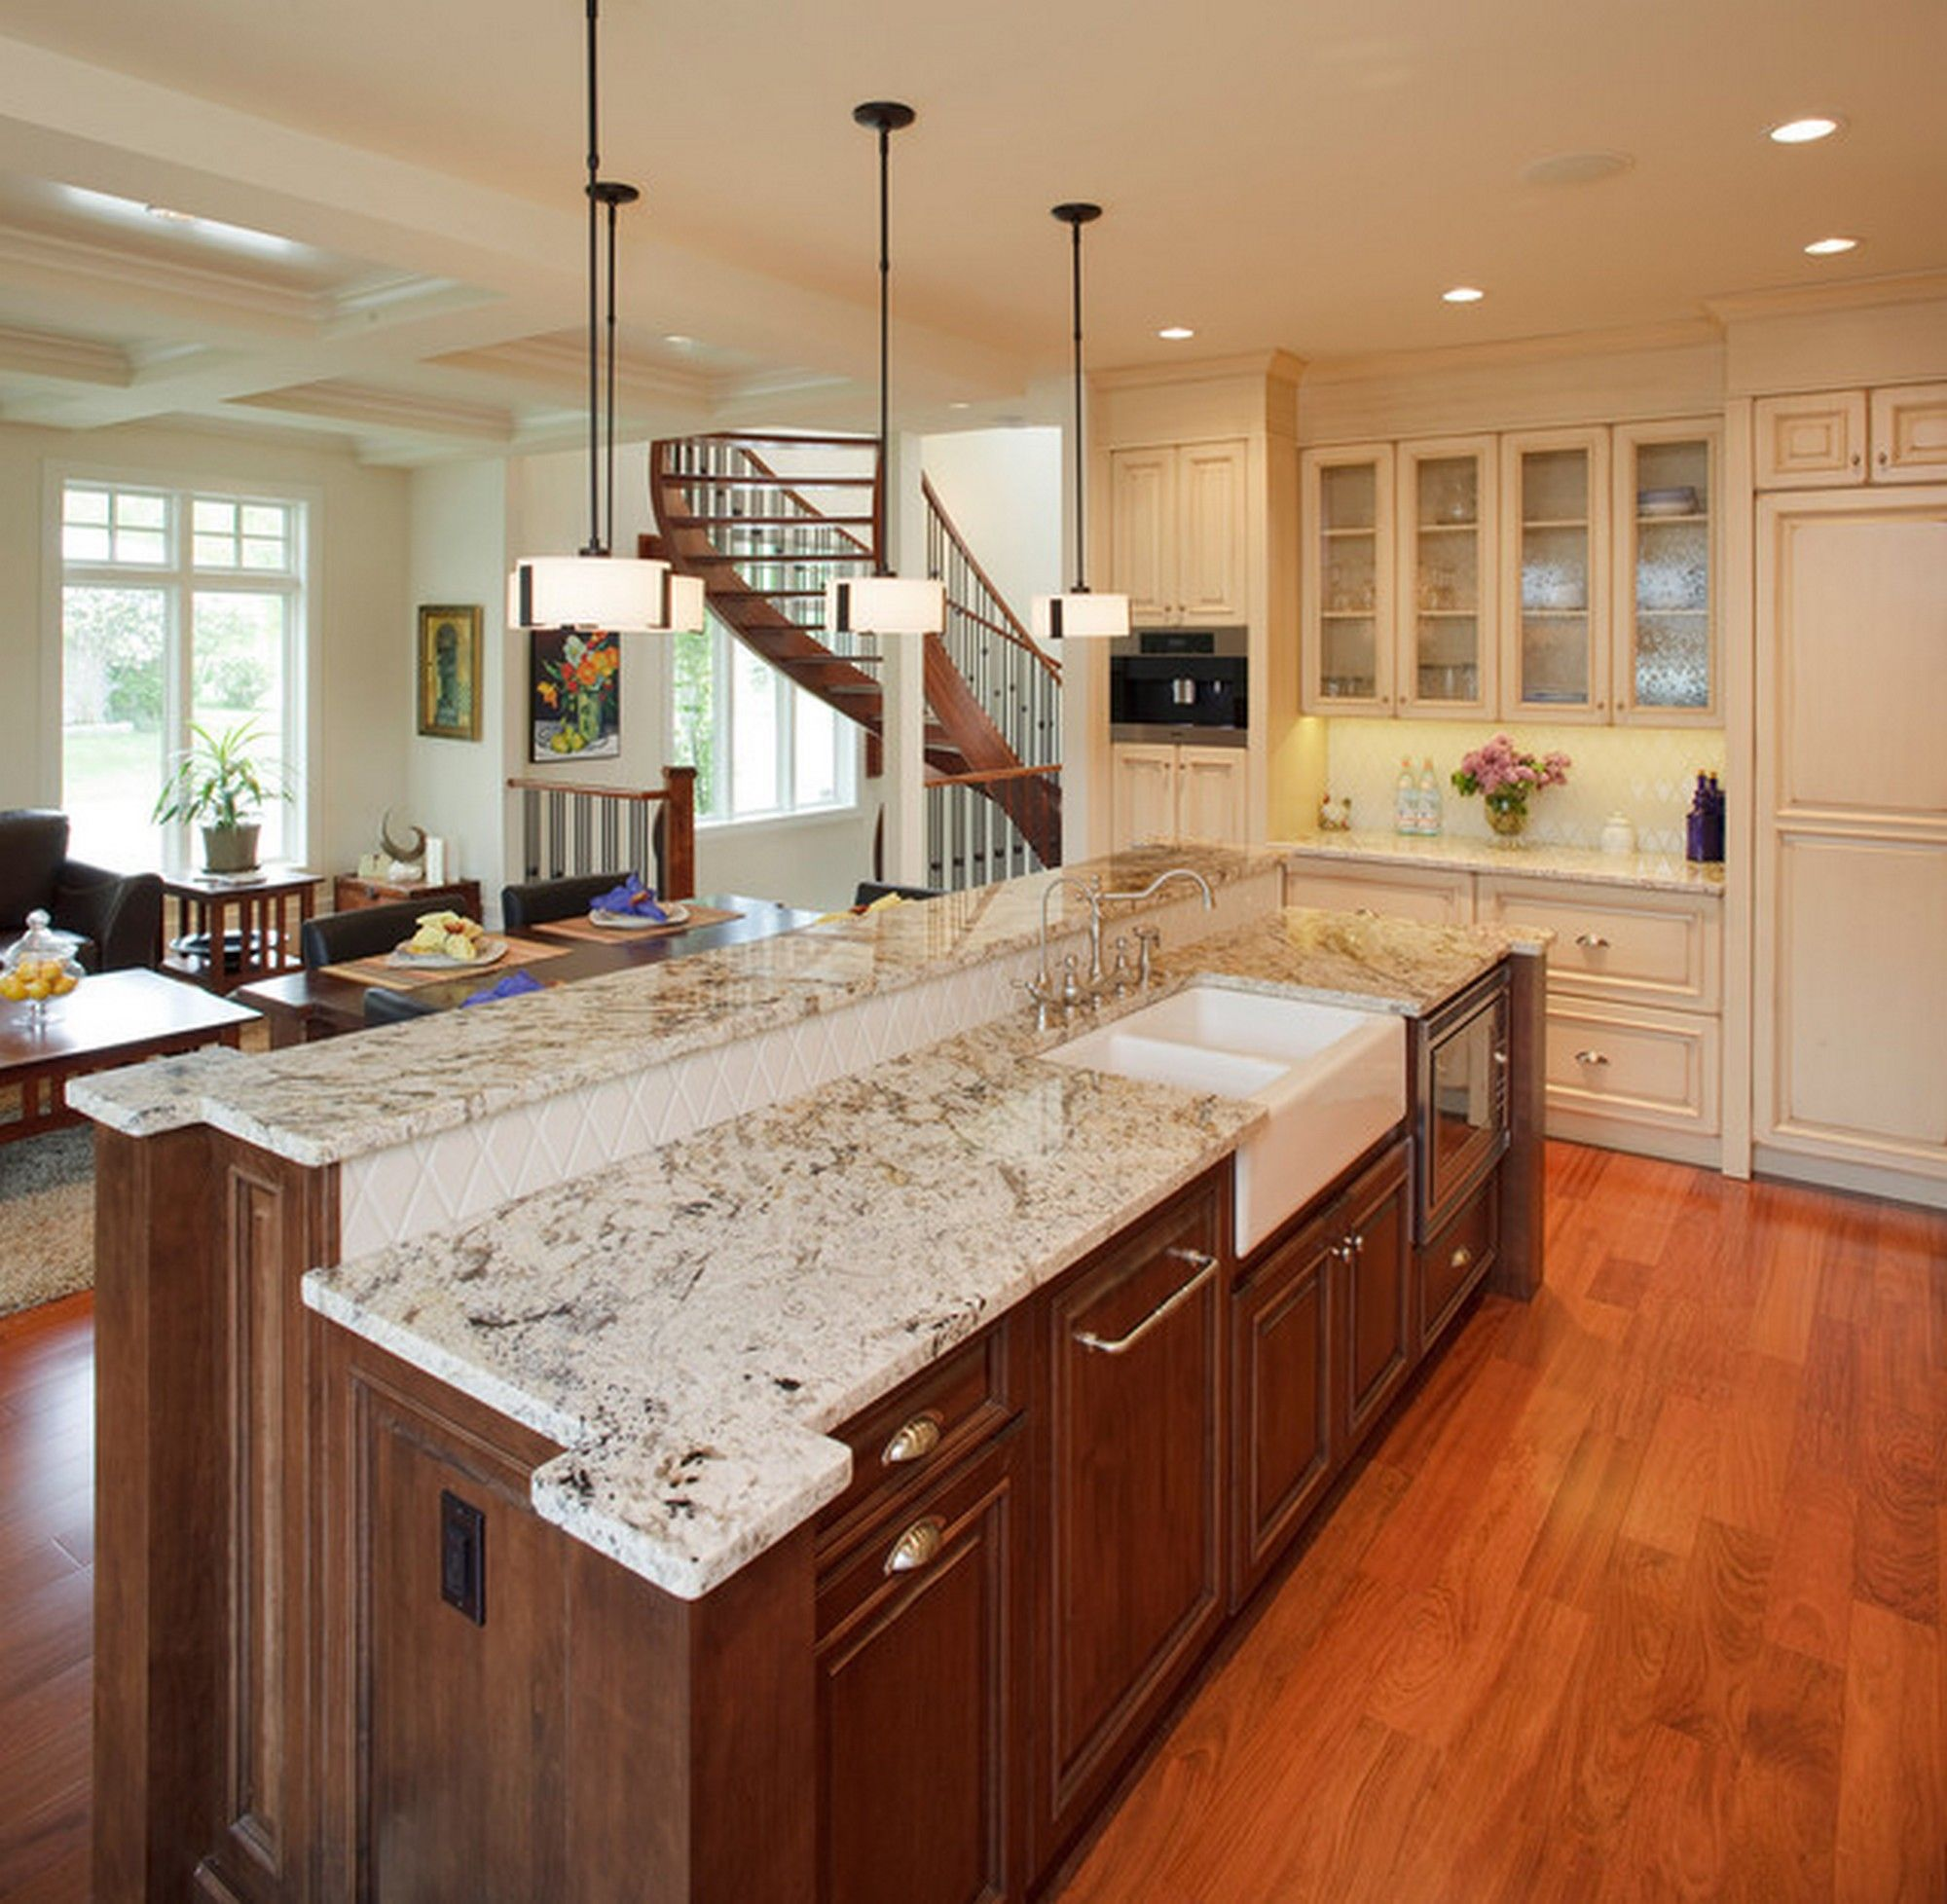 Kitchen white springs granite color for living room and kitchen combined ideas to be look large for Best granite colors for living room